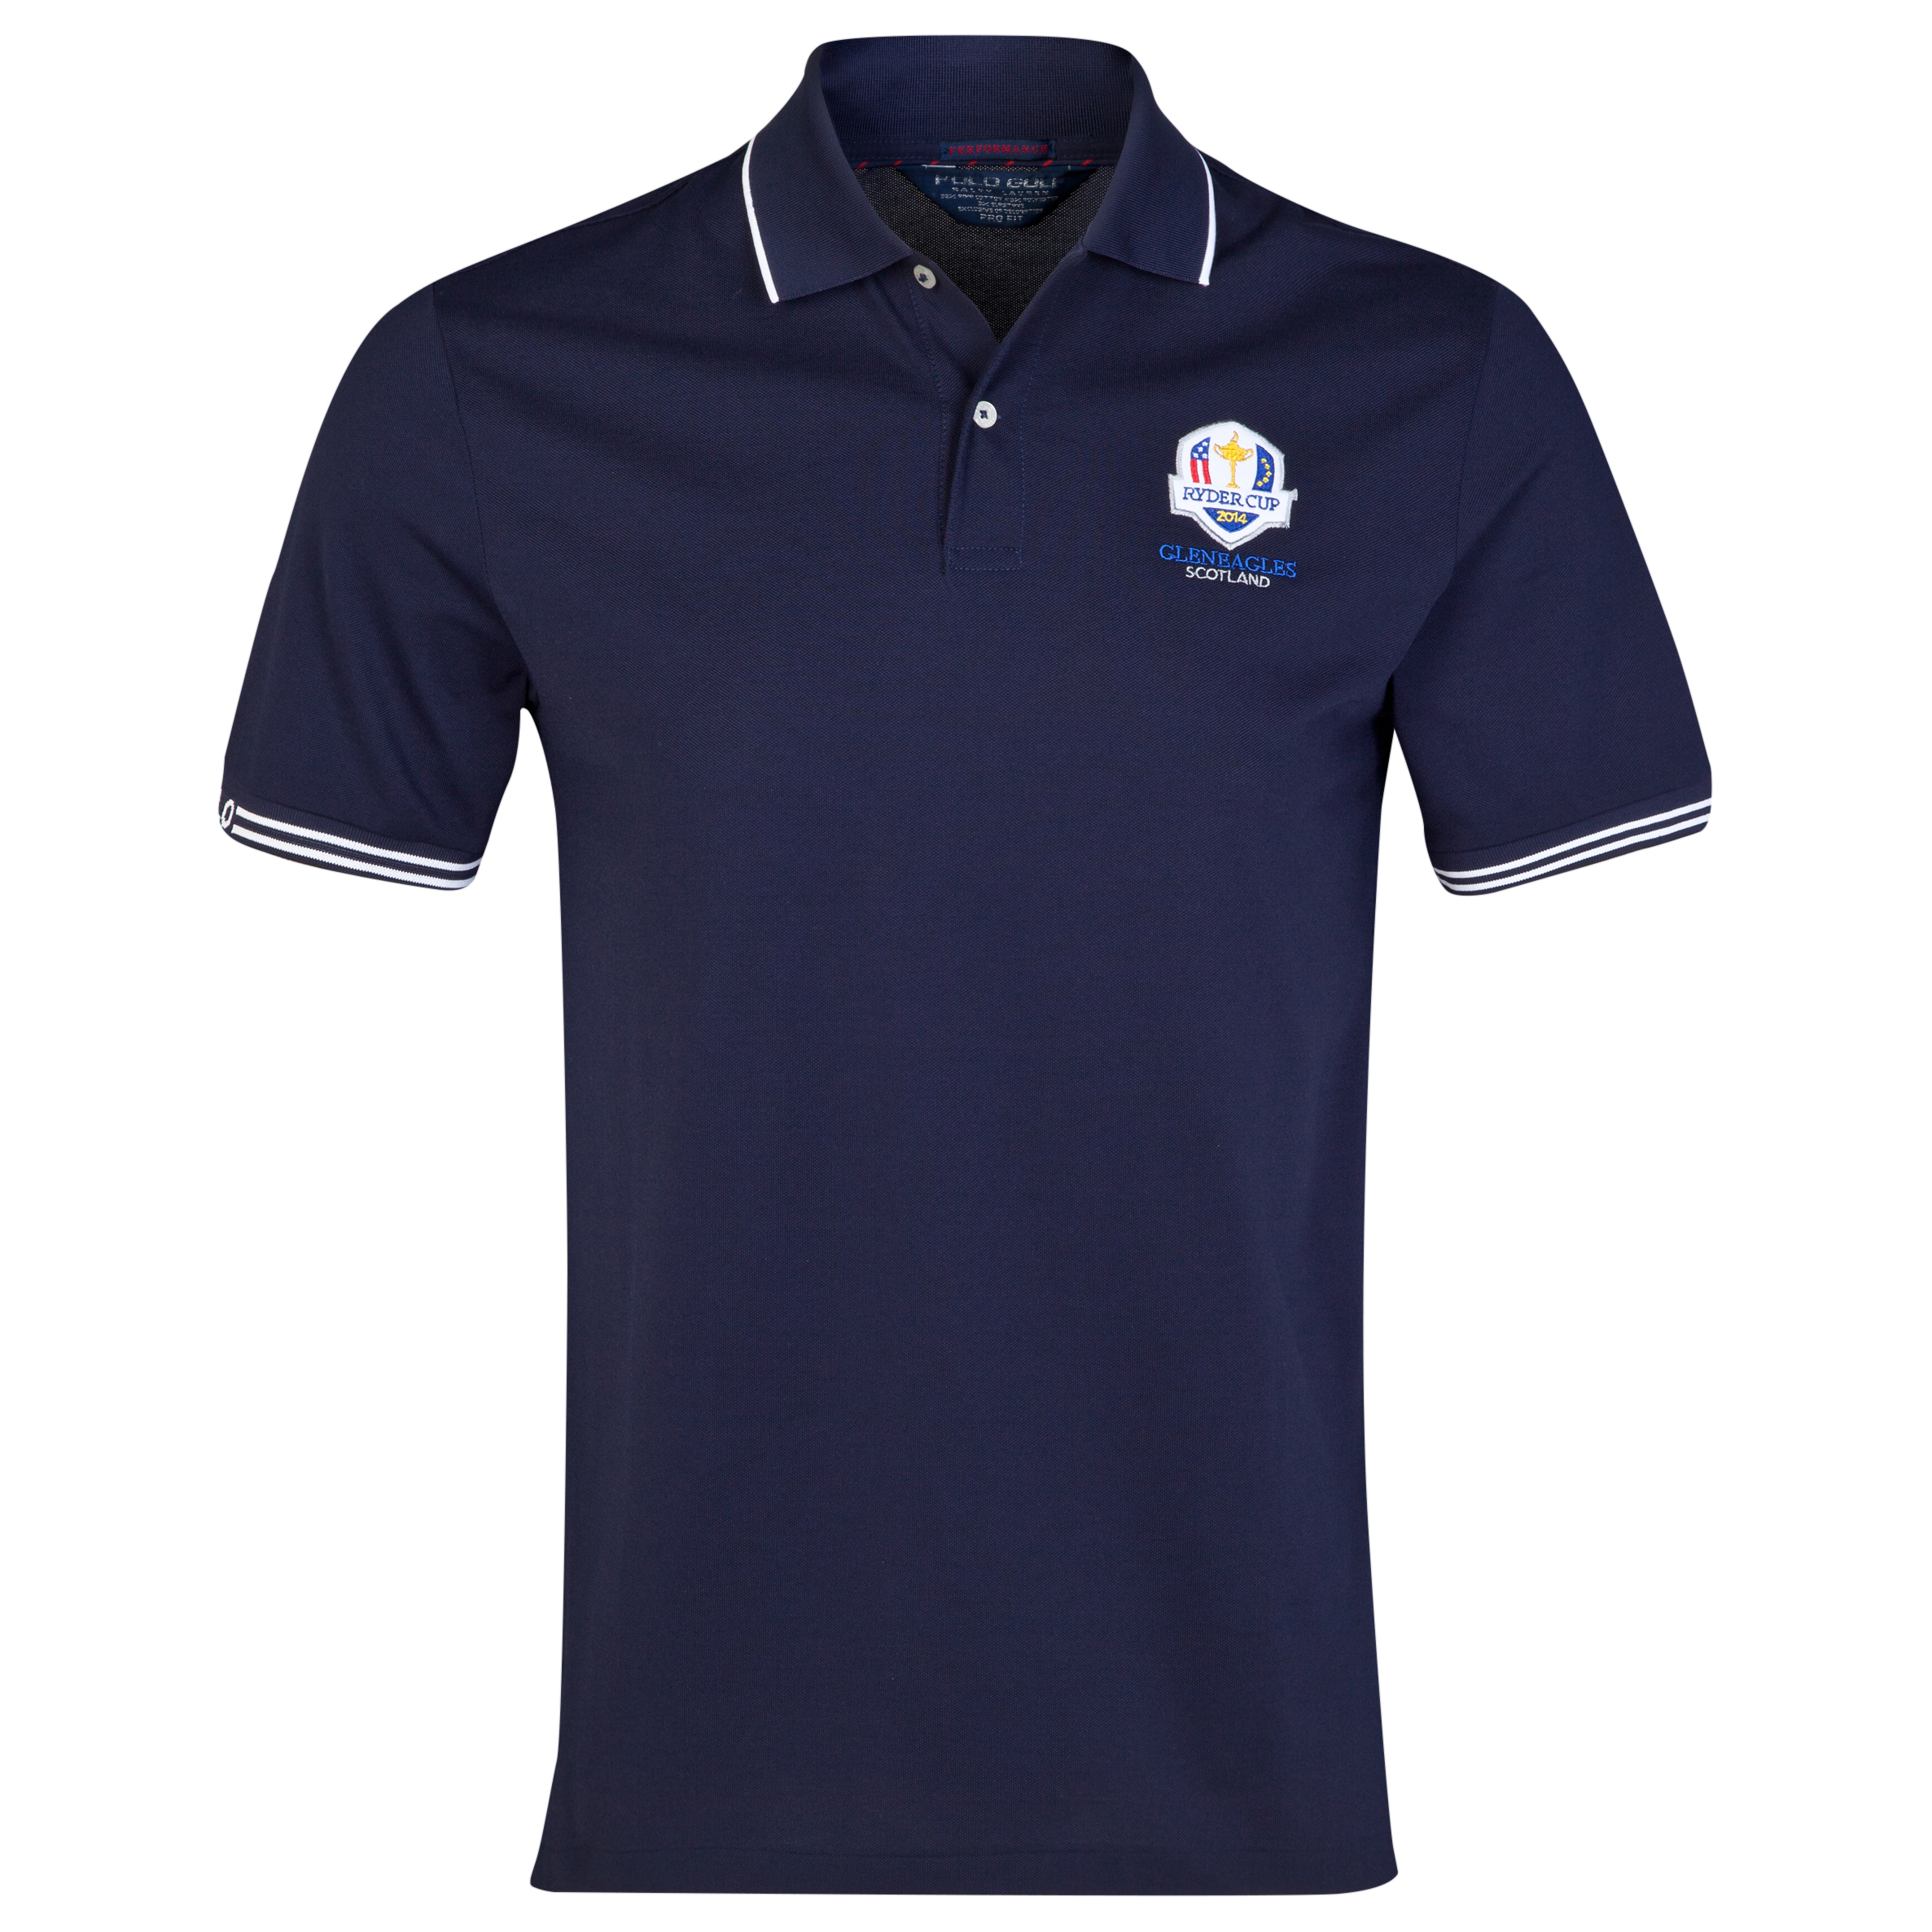 The 2014 Ryder Cup Ralph Lauren Mesh Pro Fit Polo - French Navy